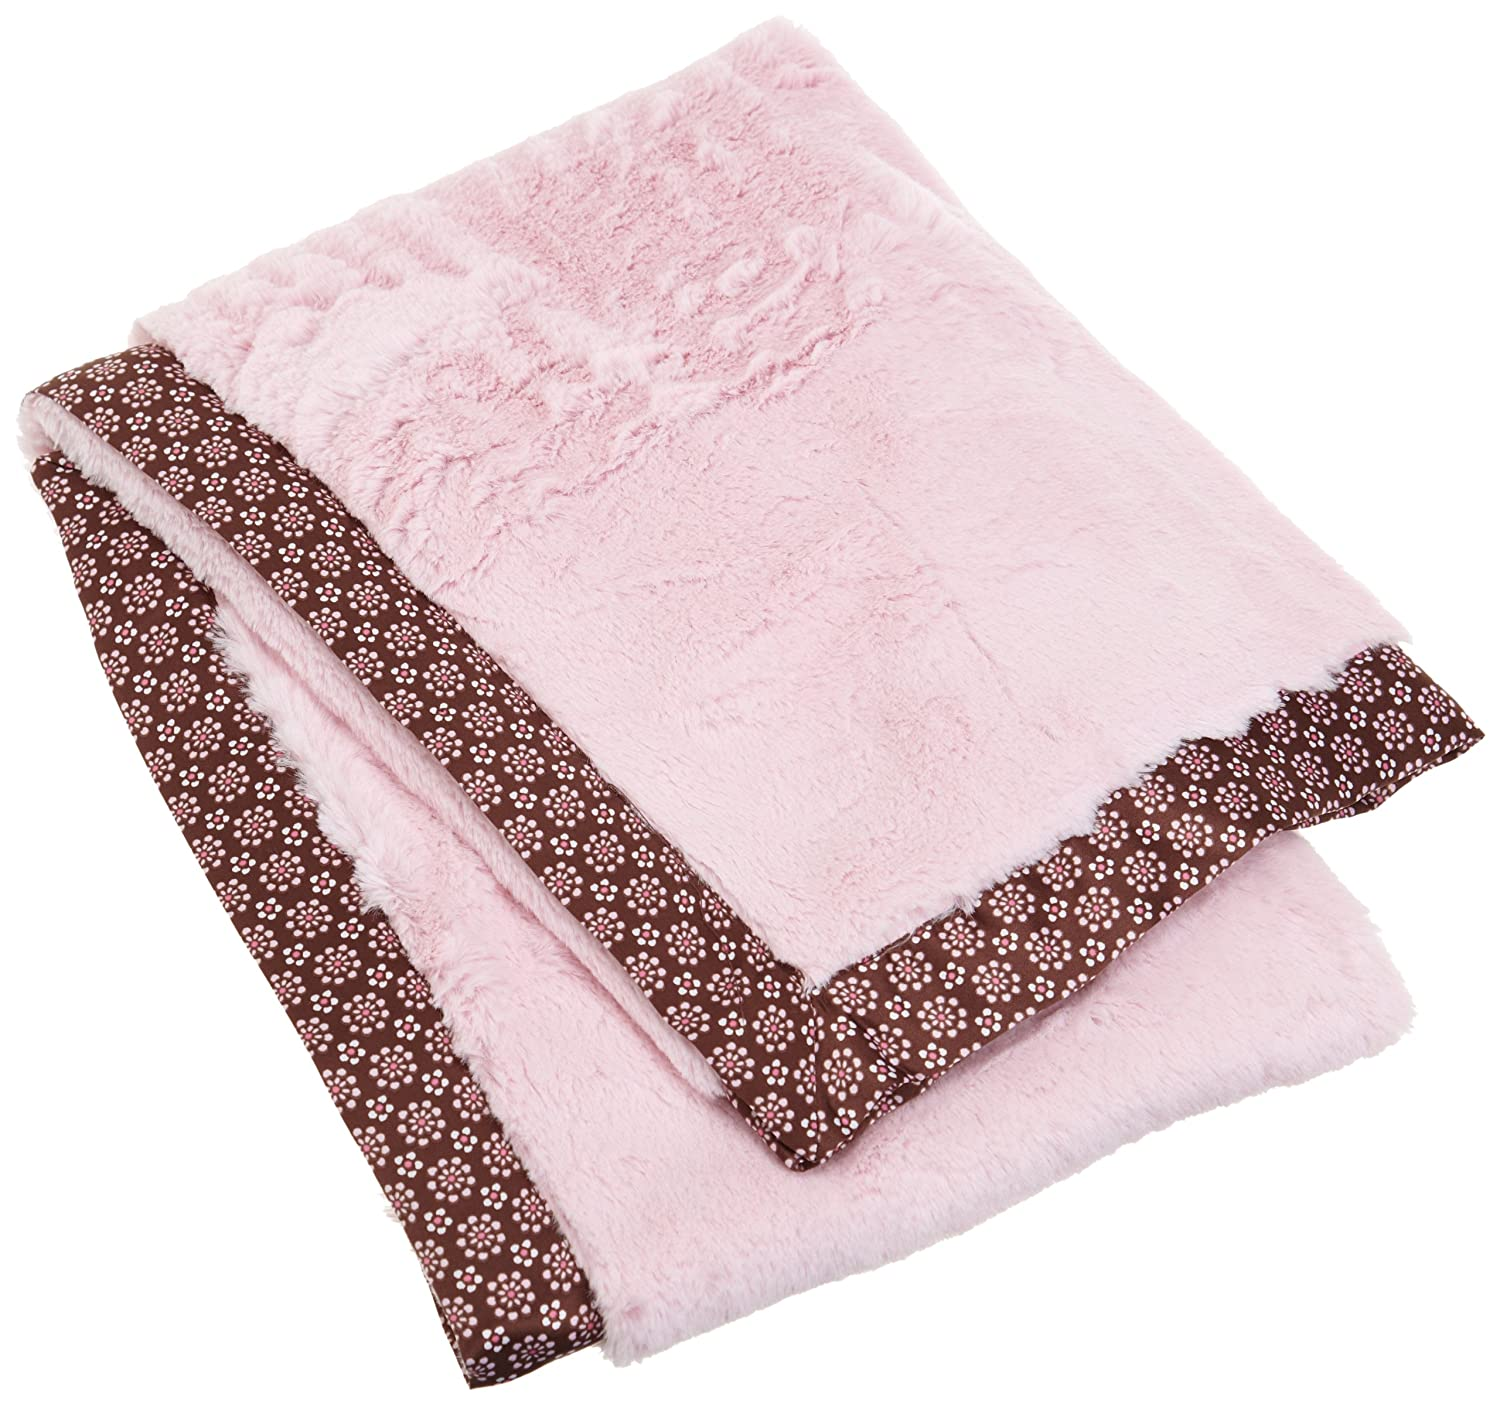 Carters everyday easy faux fur with satin blanket pink brown floral  discontinued manufacturer baby jpg 1500x1404 504722510